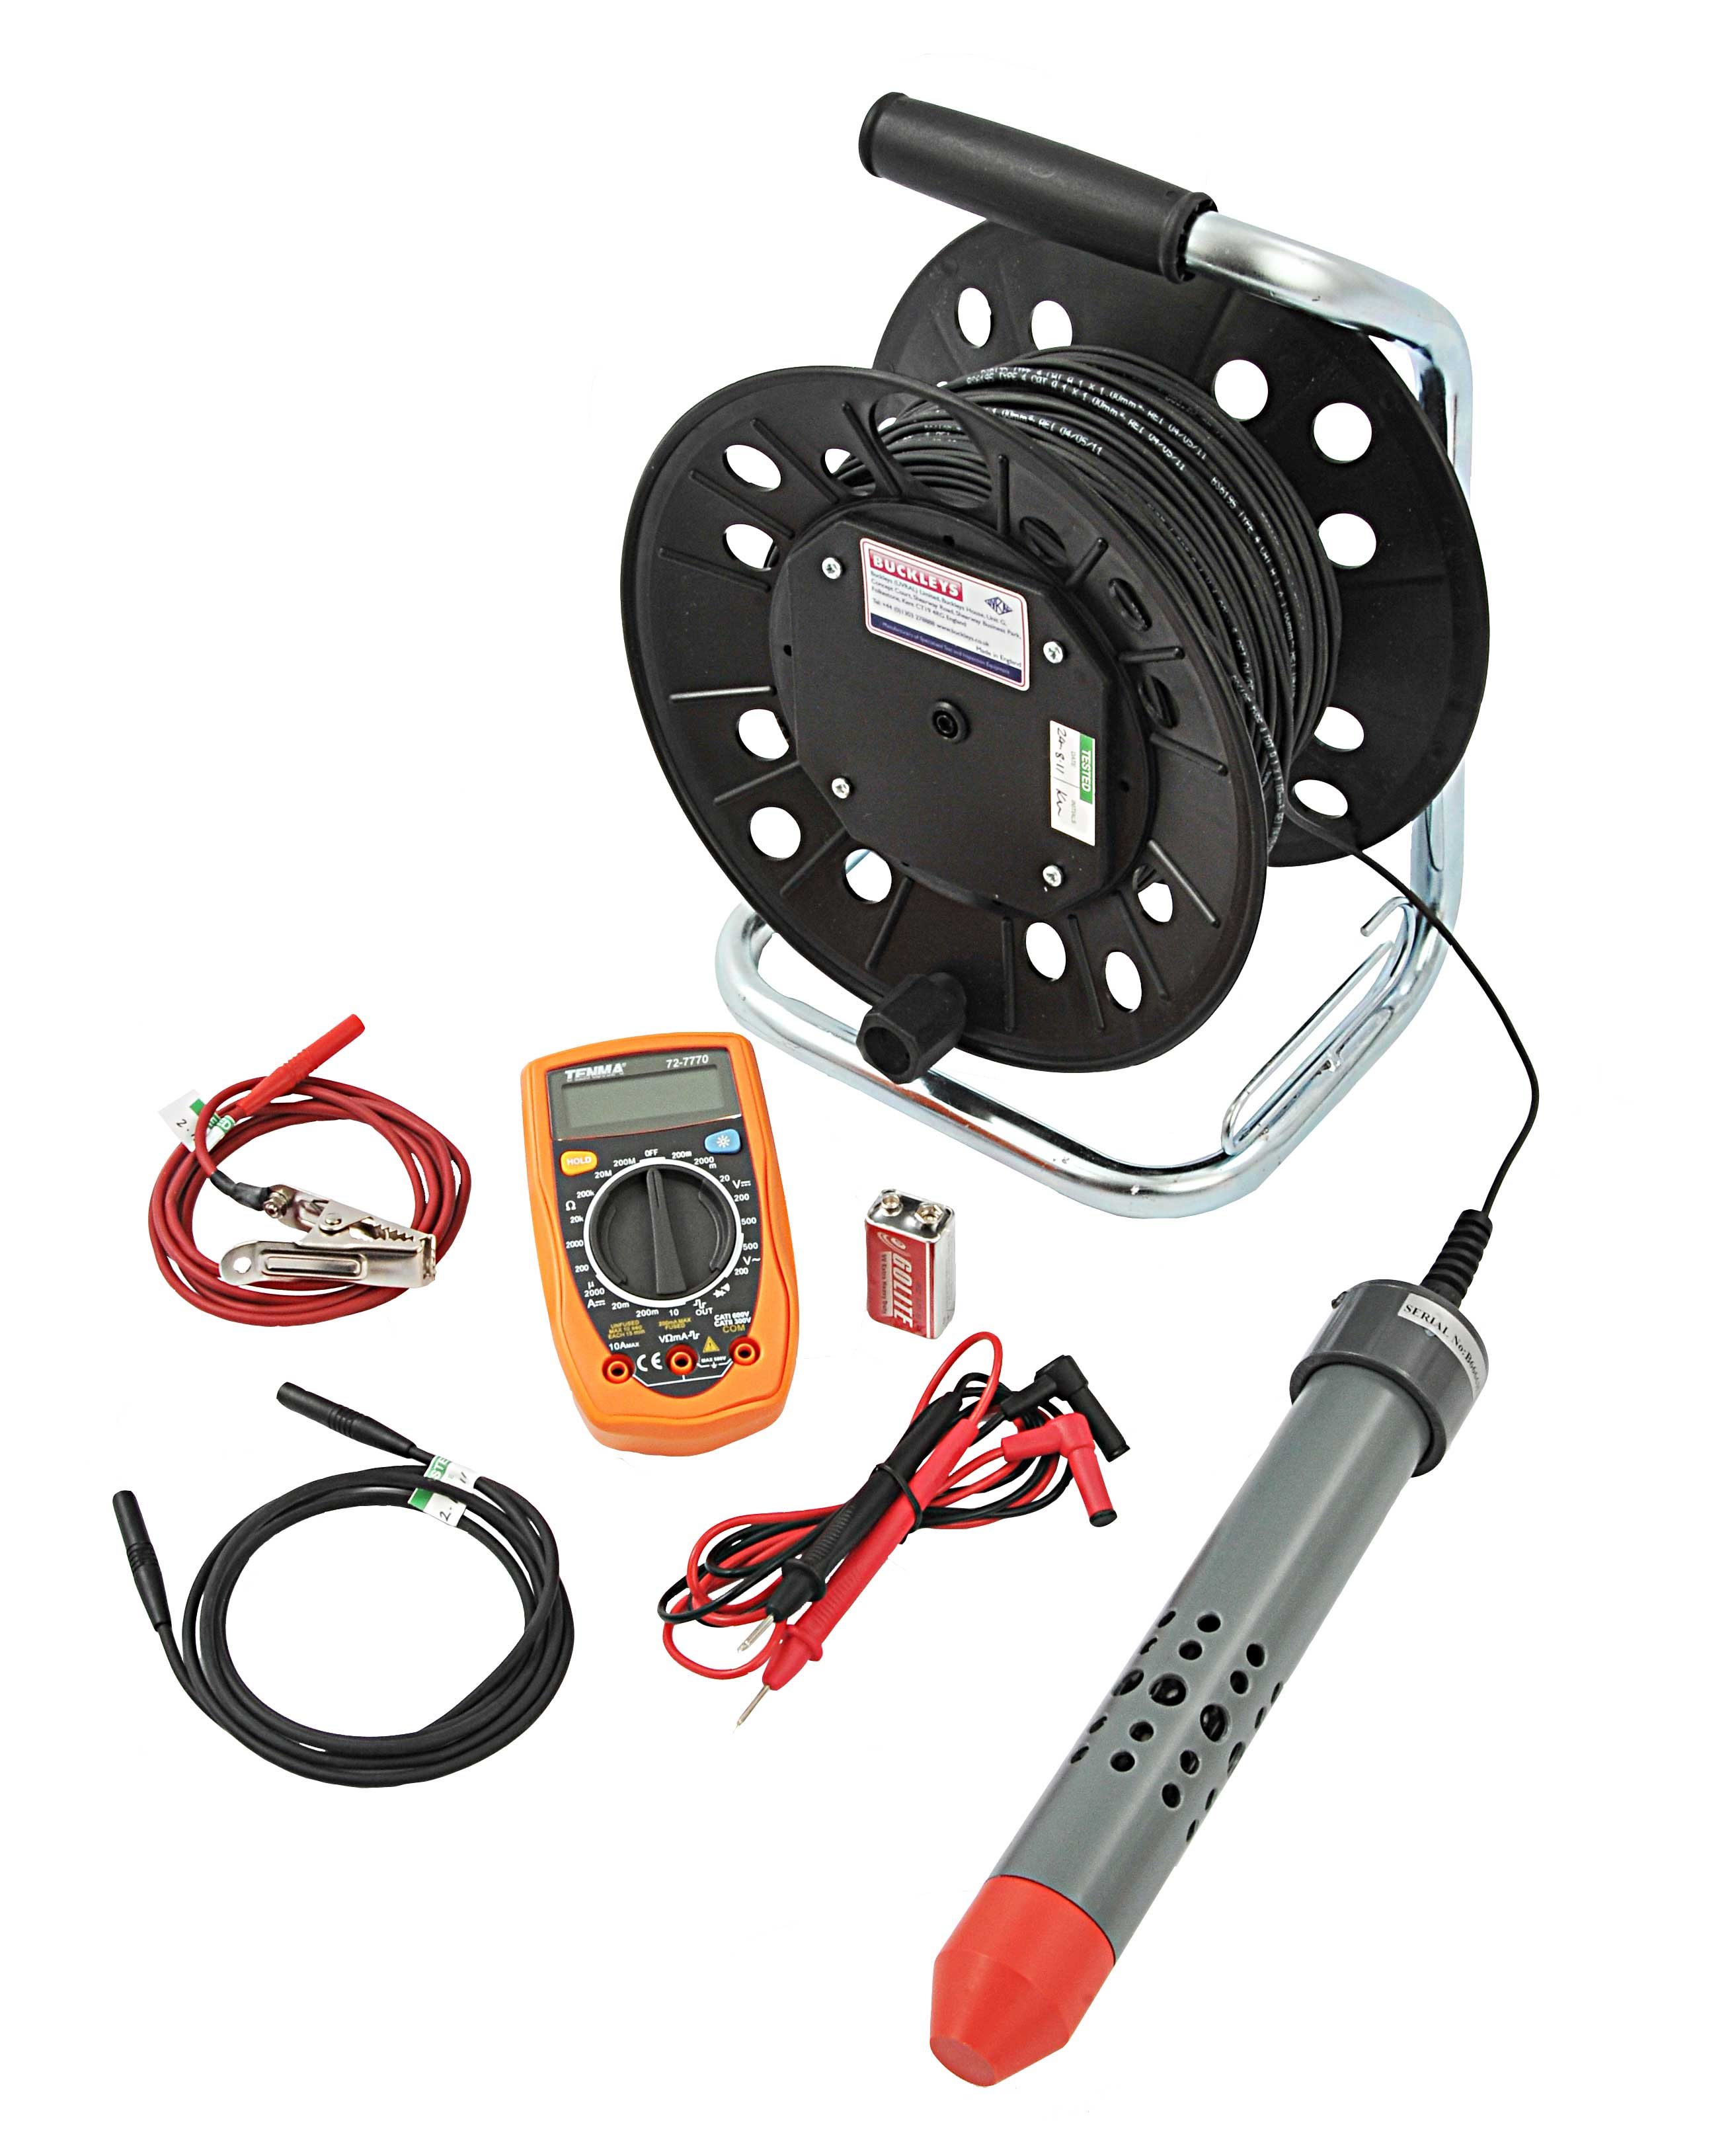 BUCKLEY'S MARINE SURVEY KIT